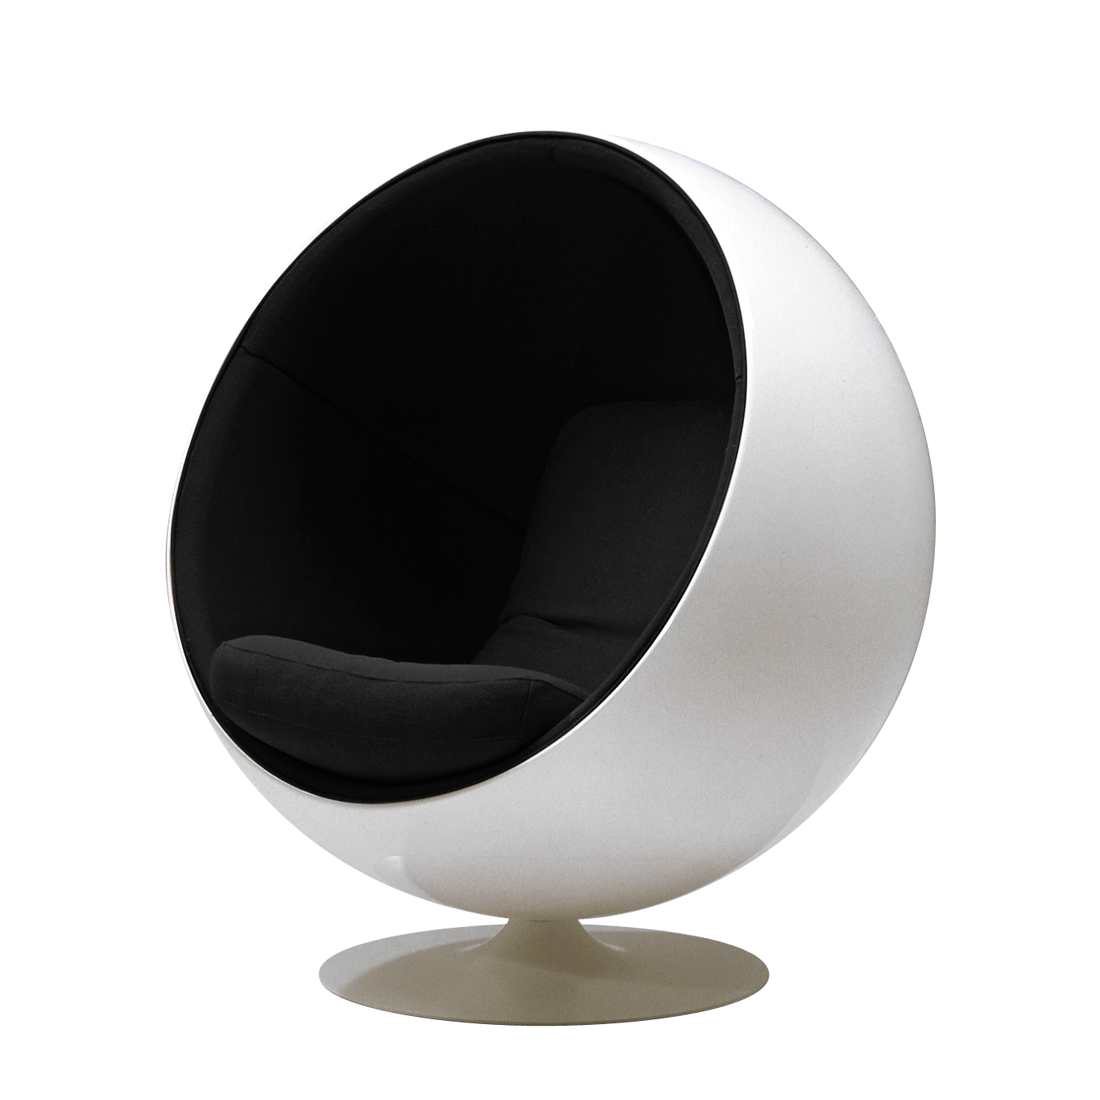 Eero Aarnio Sessel Design Classic Ball Chair Ark Sillones Estilo Muebles